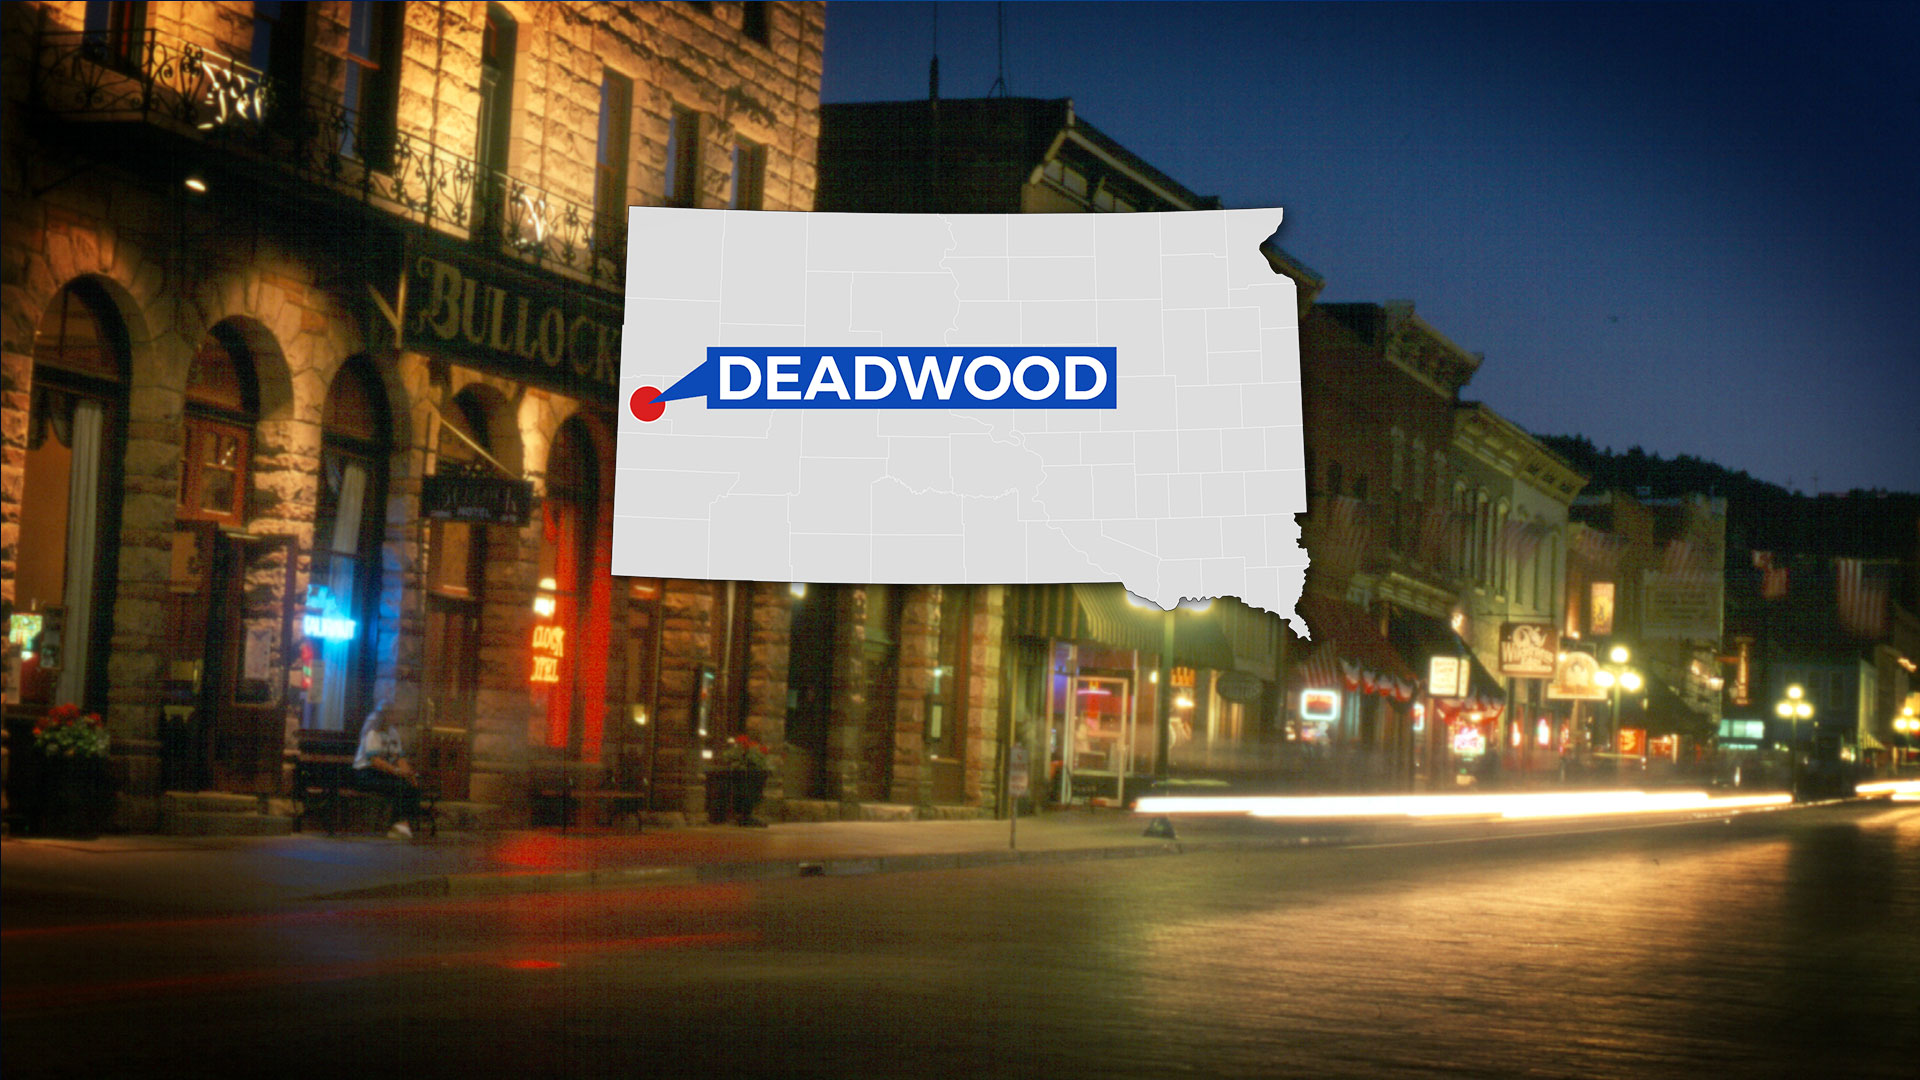 KELO Deadwood